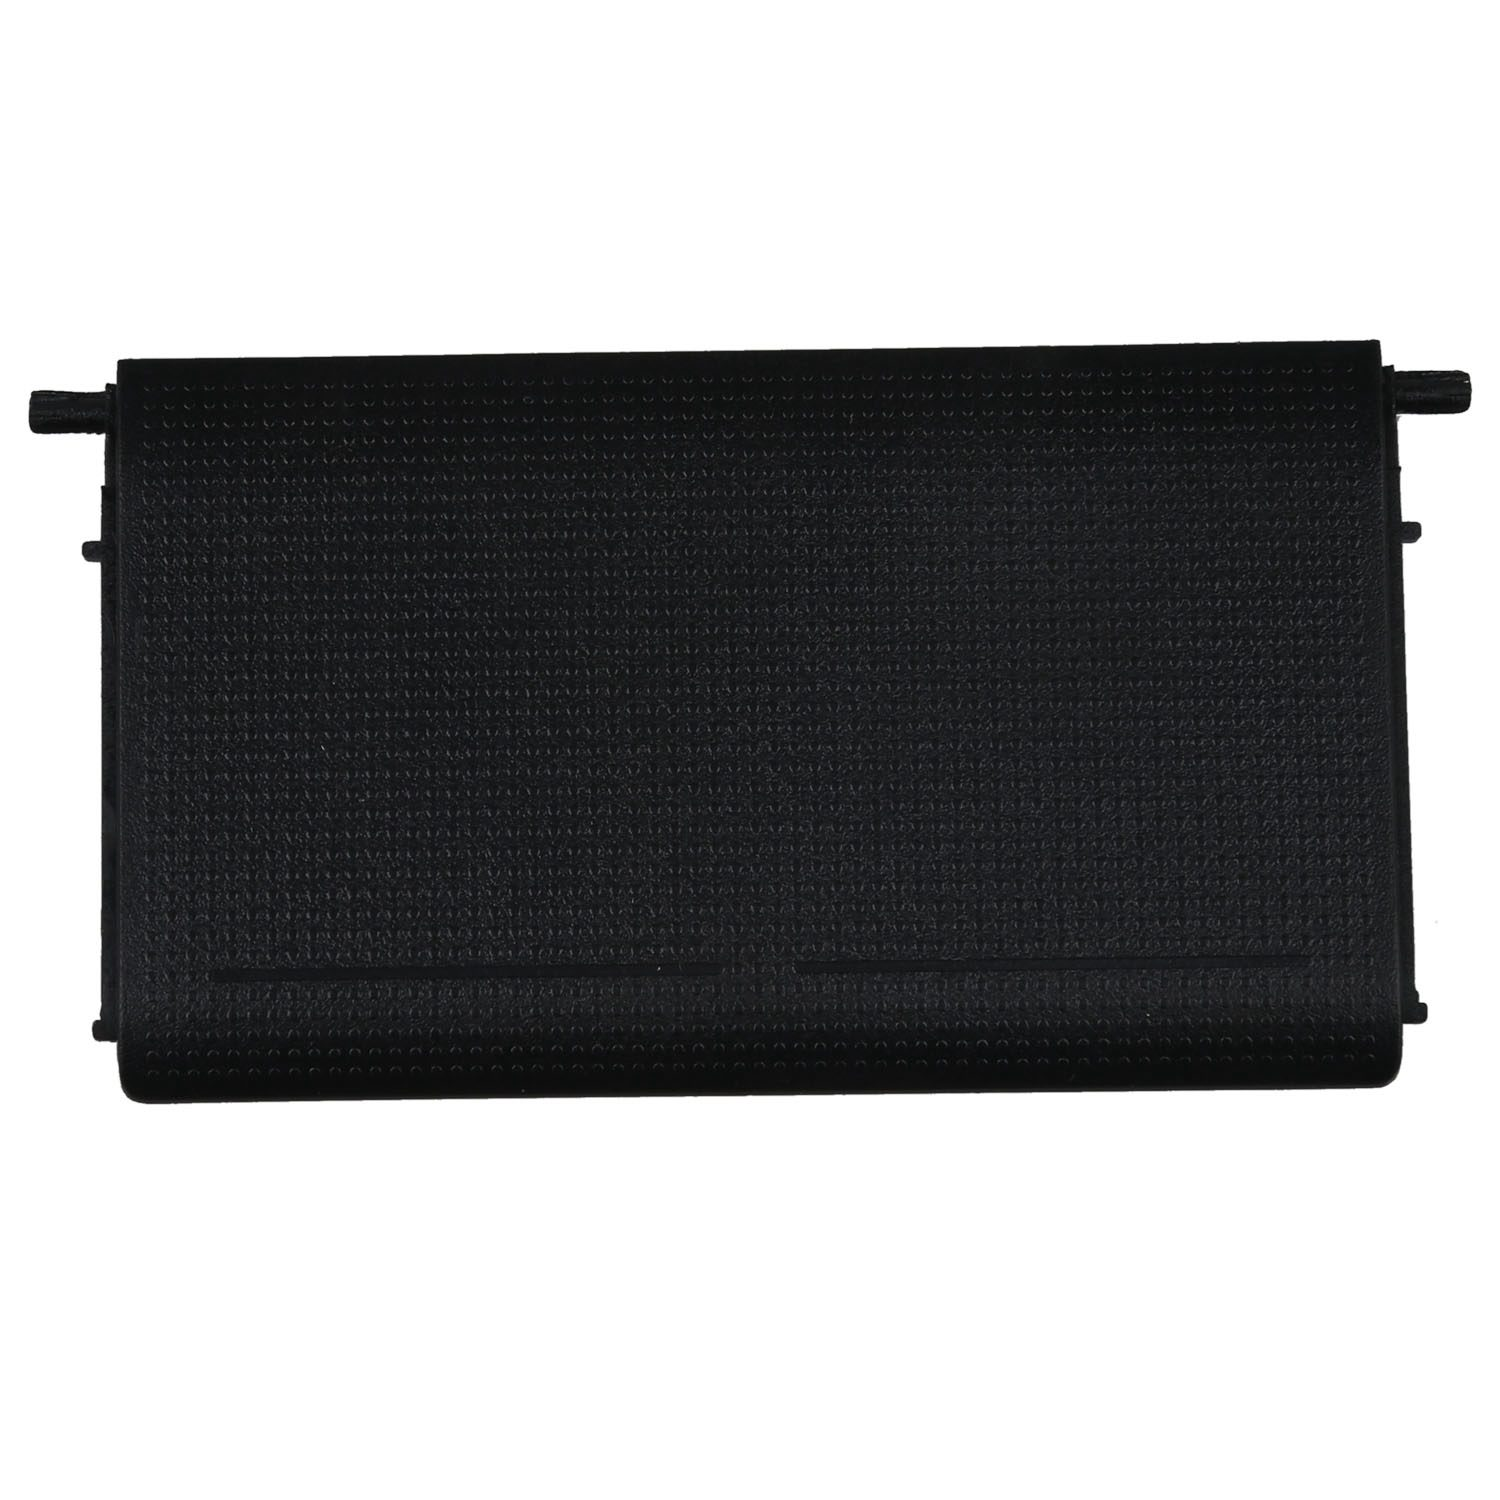 for <font><b>Thinkpad</b></font> laptop Touch pad cover for X220 X230 image